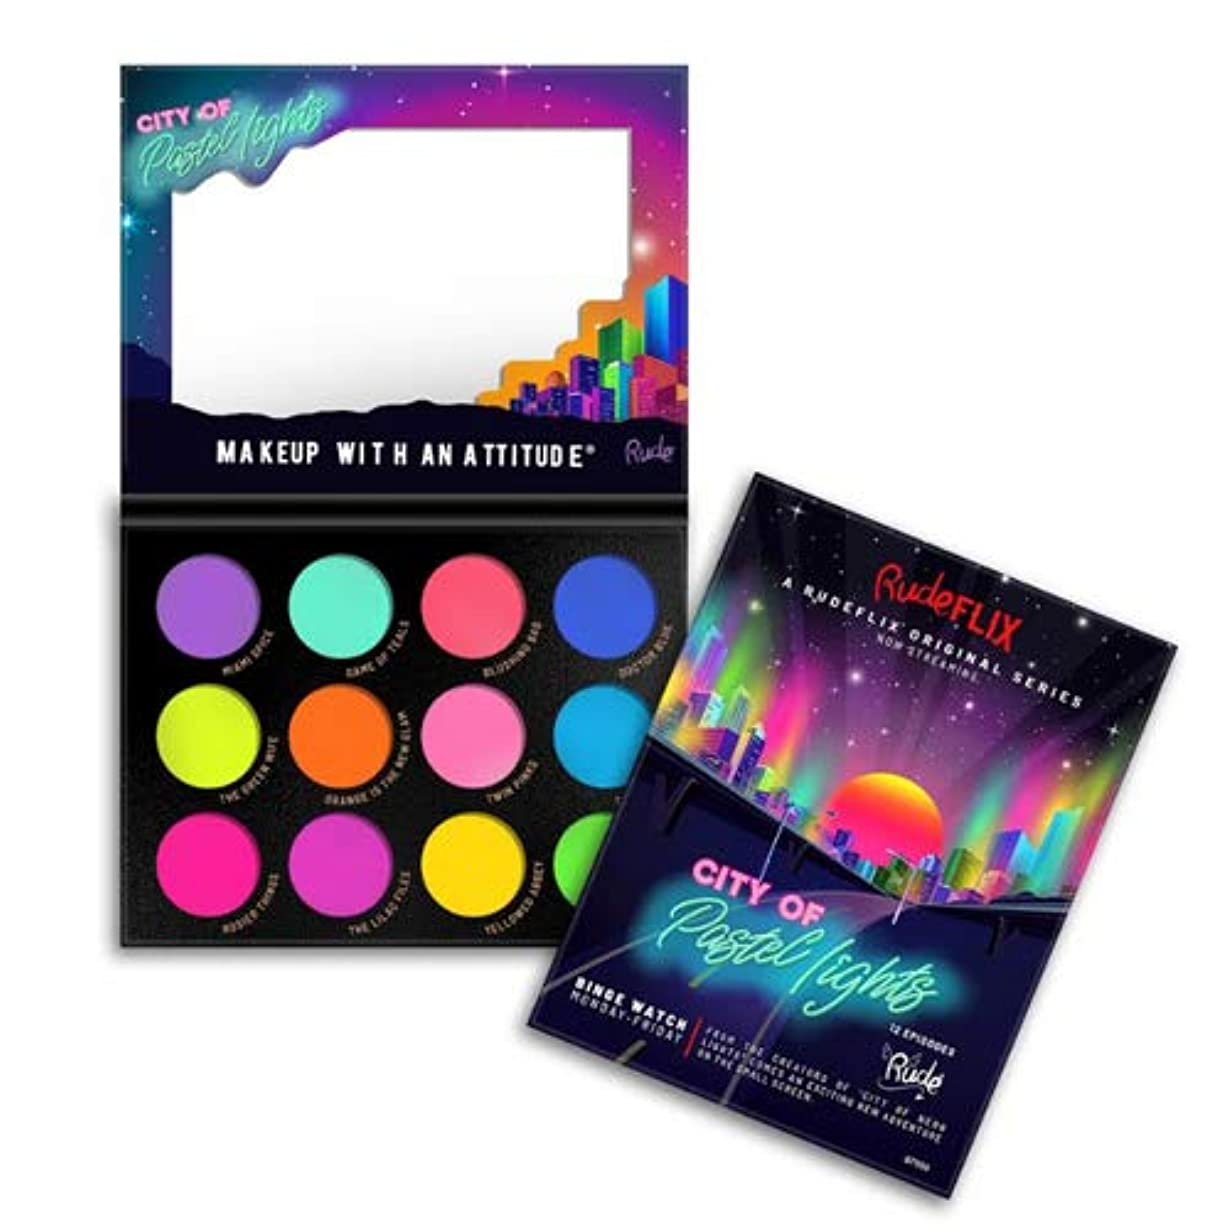 またね姪マティスRUDE City of Pastel Lights - 12 Pastel Pigment & Eyeshadow Palette (6 Pack) (並行輸入品)